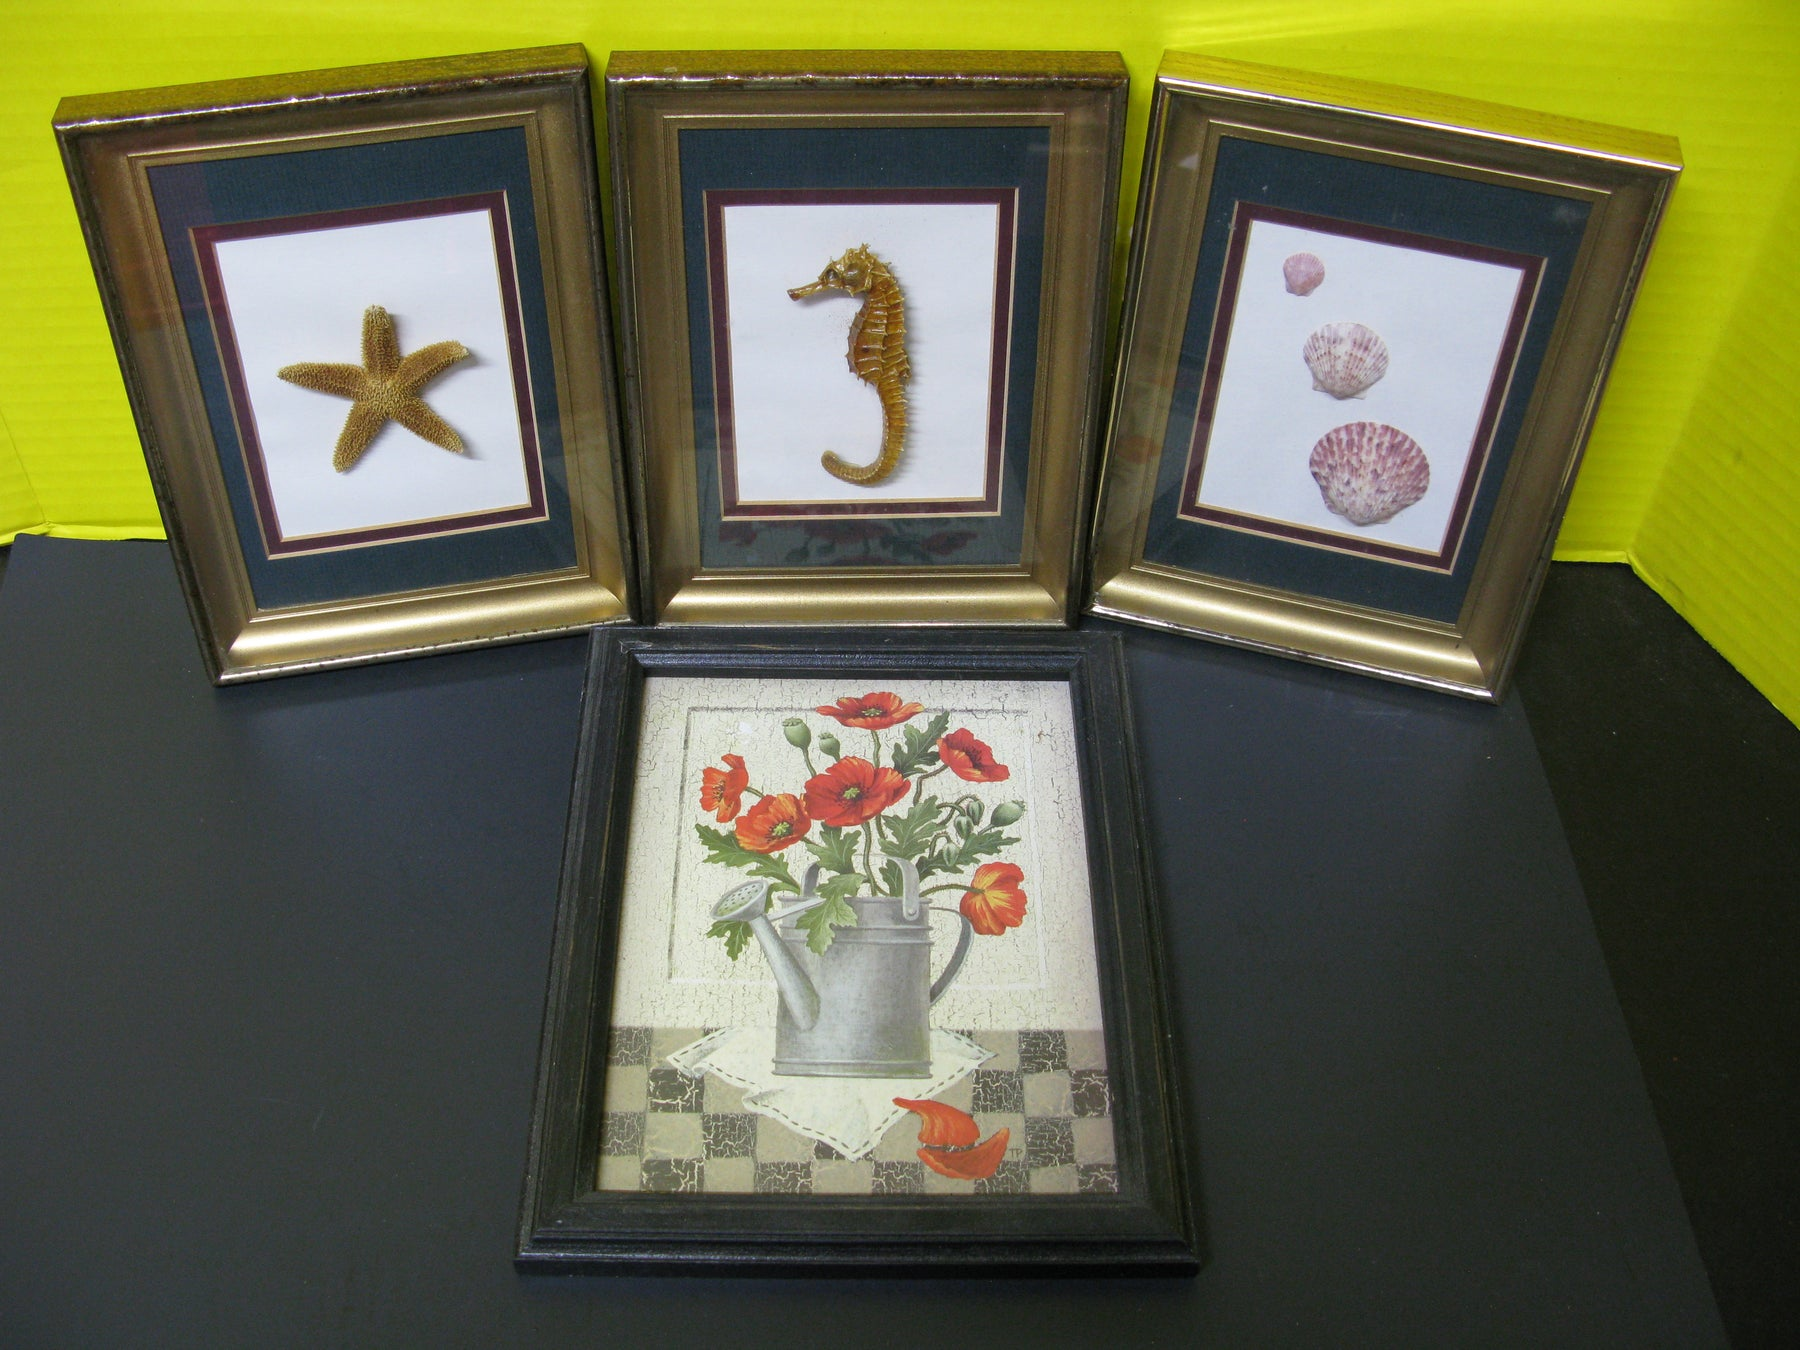 4 Picture Frames: Seahorse, Seashells, Starfish, and Flowers